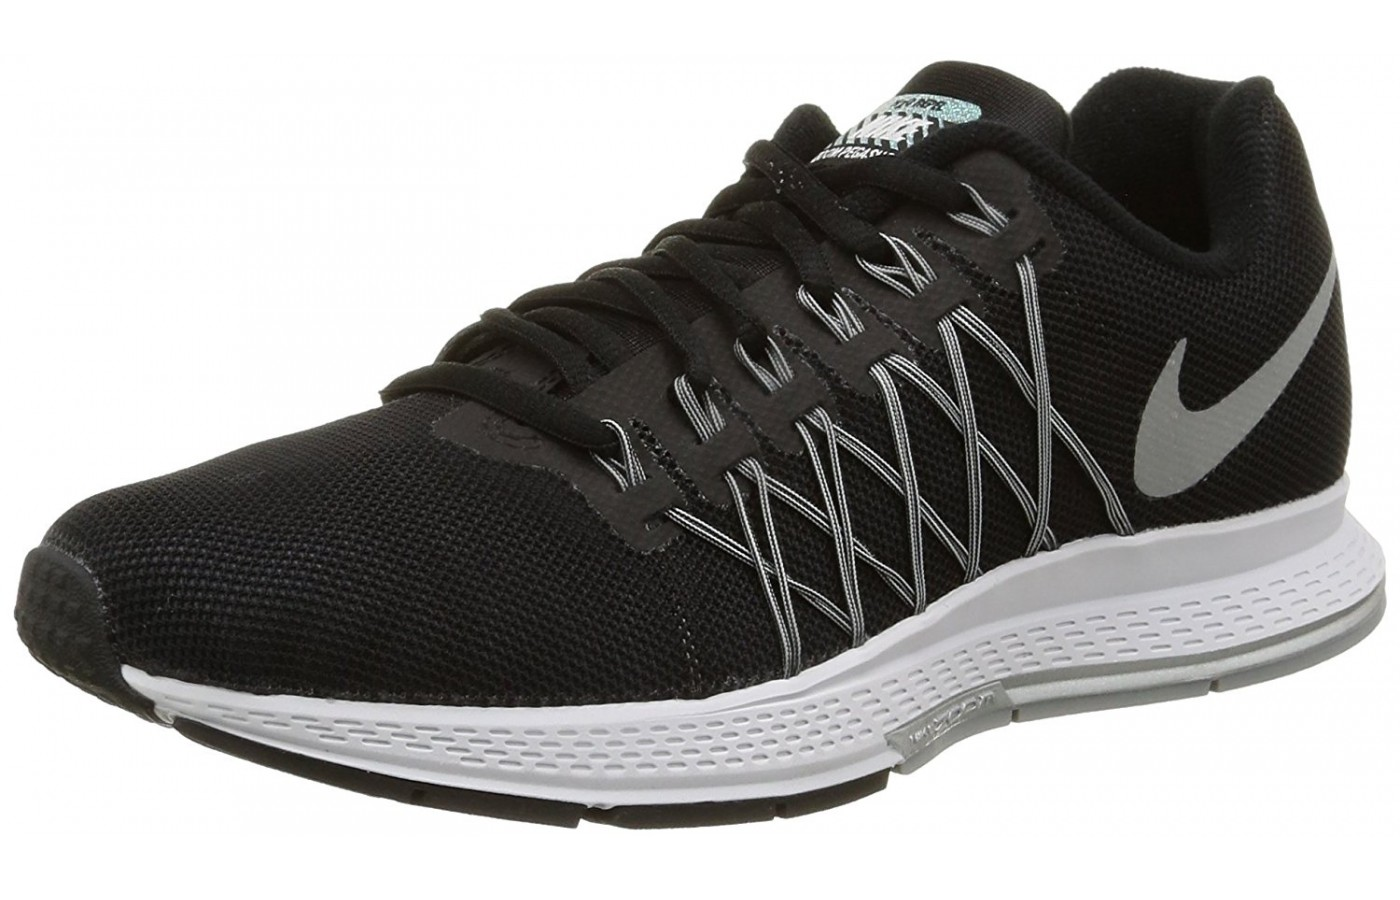 A three quarter view of the Nike Zoom Pegasus 32 running shoe.